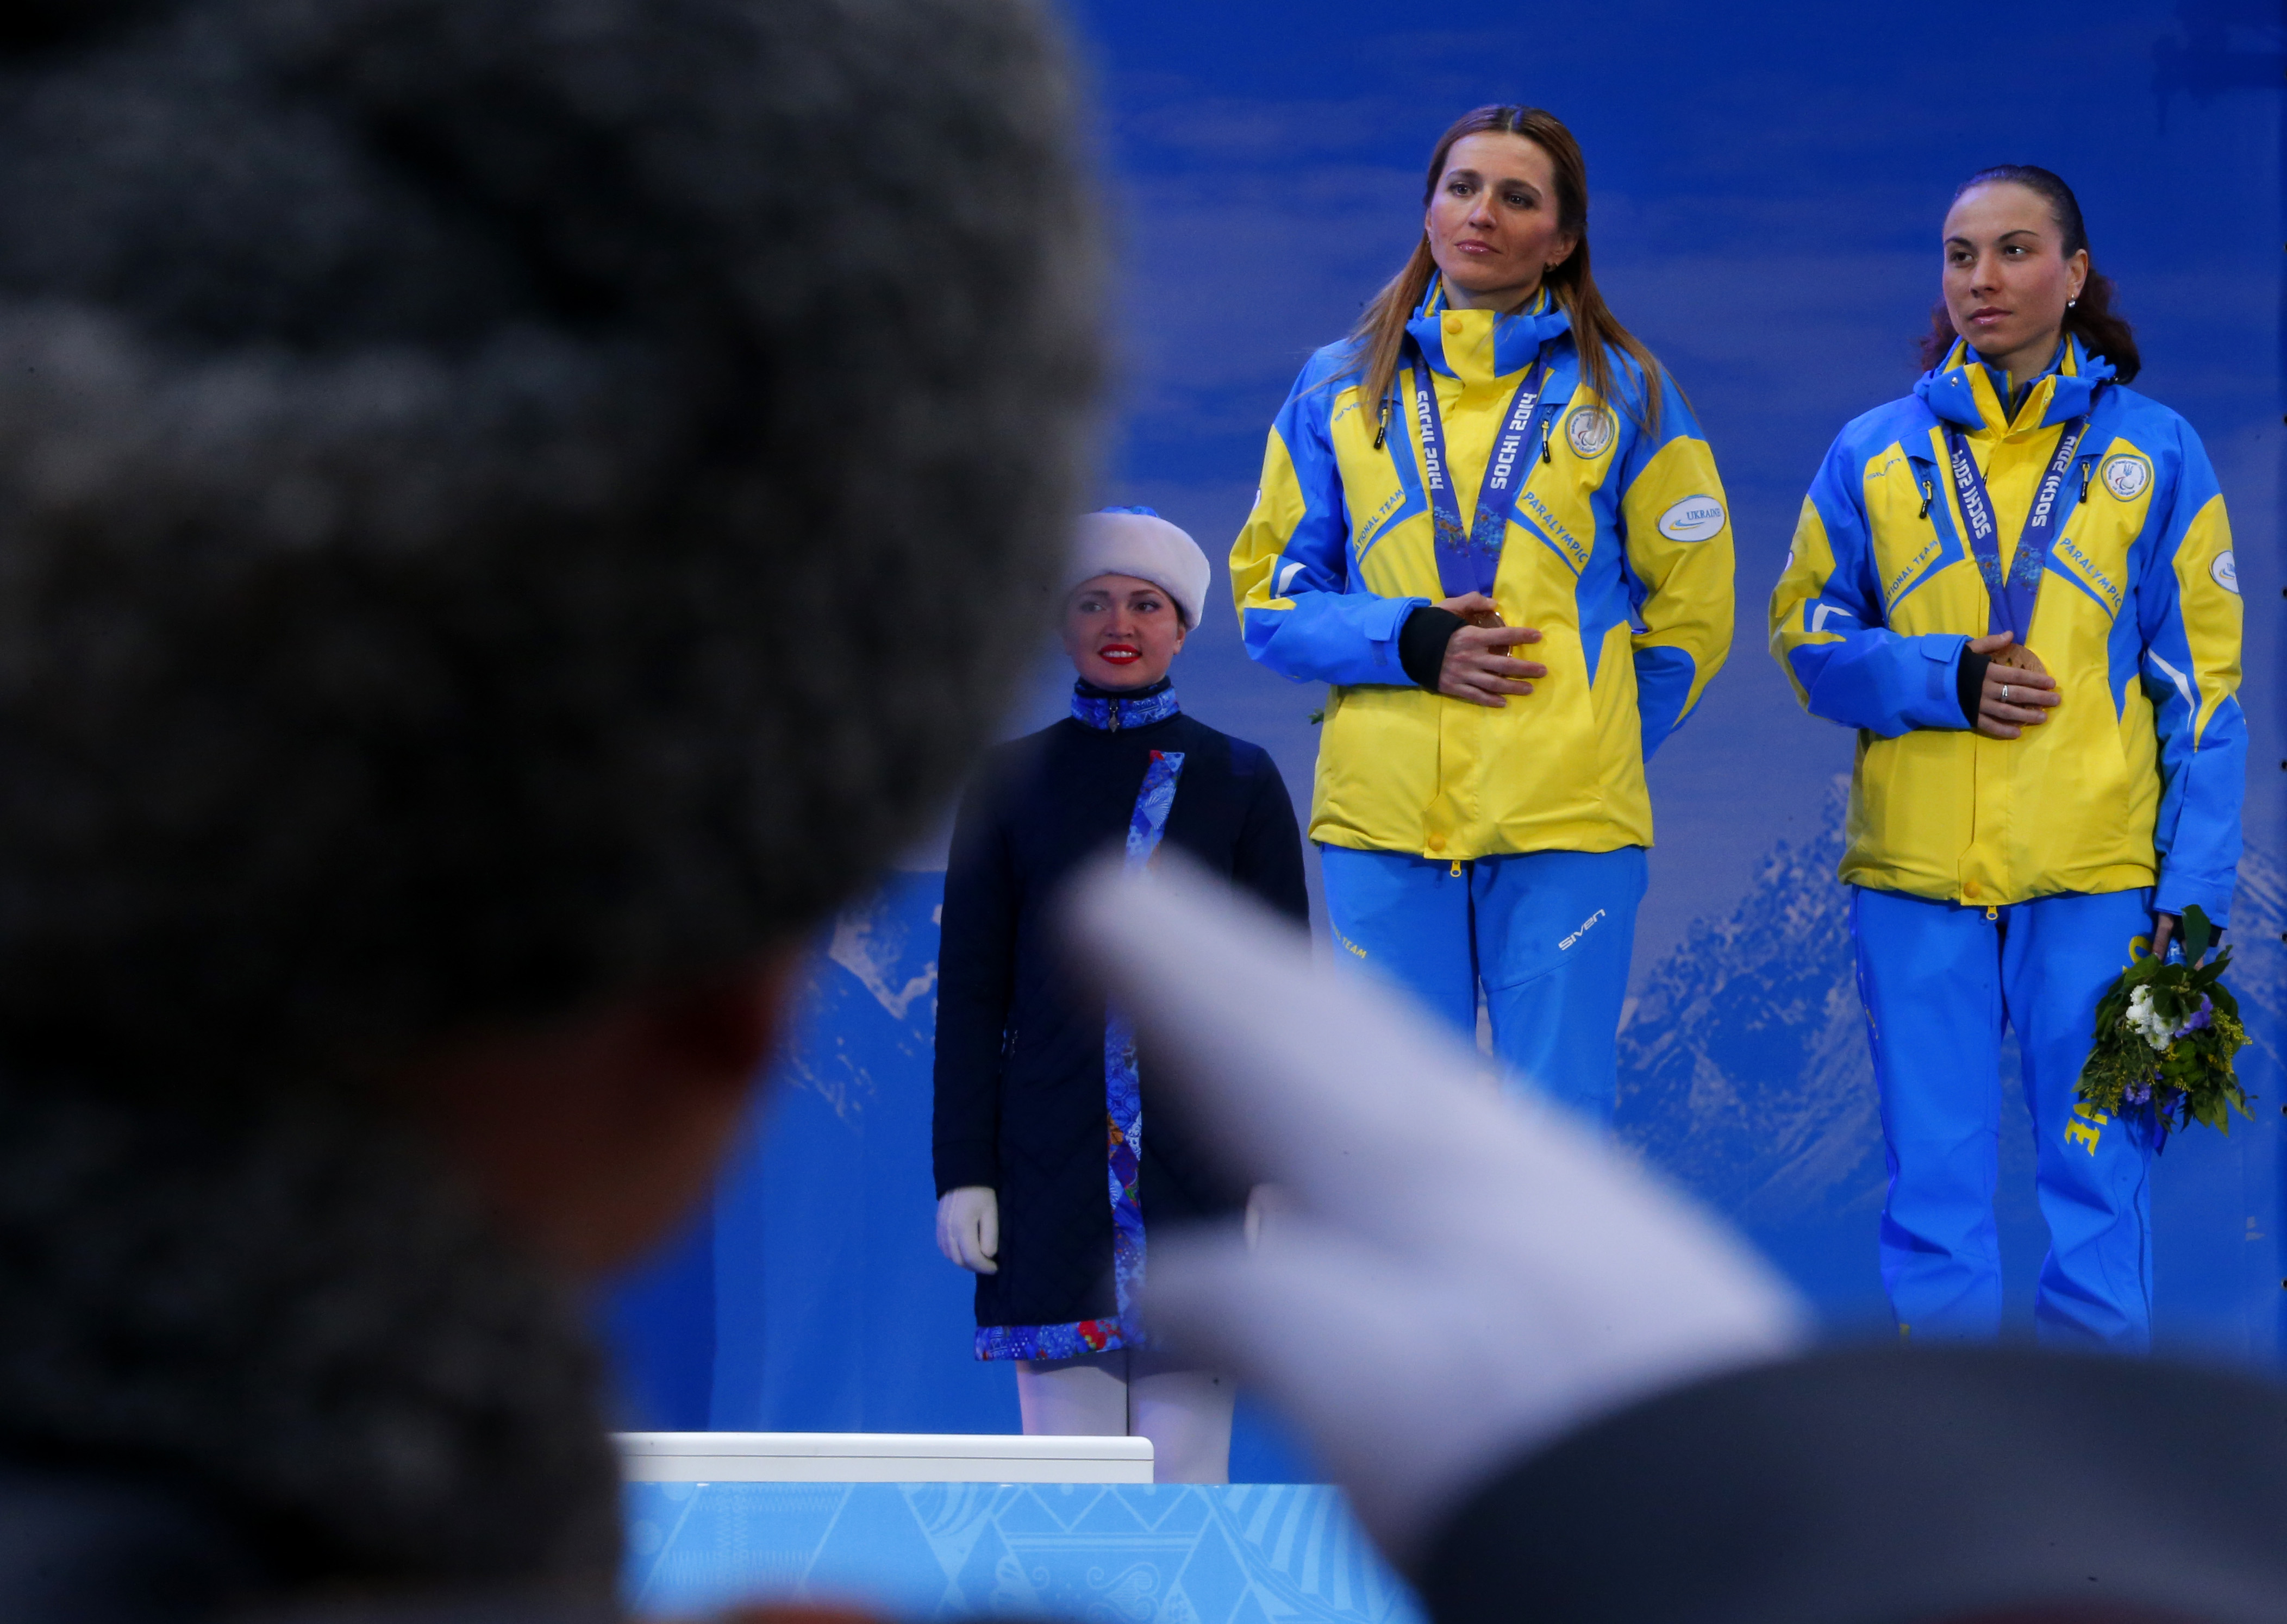 A Russian honor guard soldier salutes as Ukraine's  Oksana Shyshkova , right, and her guide Lada Nesterenko cover their bronze medals with their hands after winning 3 place in the women's biathlon 12,5 km visually impaired event during a medal ceremony at the 2014 Winter Paralympic, Saturday, March 15, 2014, in Krasnaya Polyana, Russia. The majority of Ukraine's Paralympic medalists covered their medals during medal ceremonies. (AP Photo/Dmitry Lovetsky)